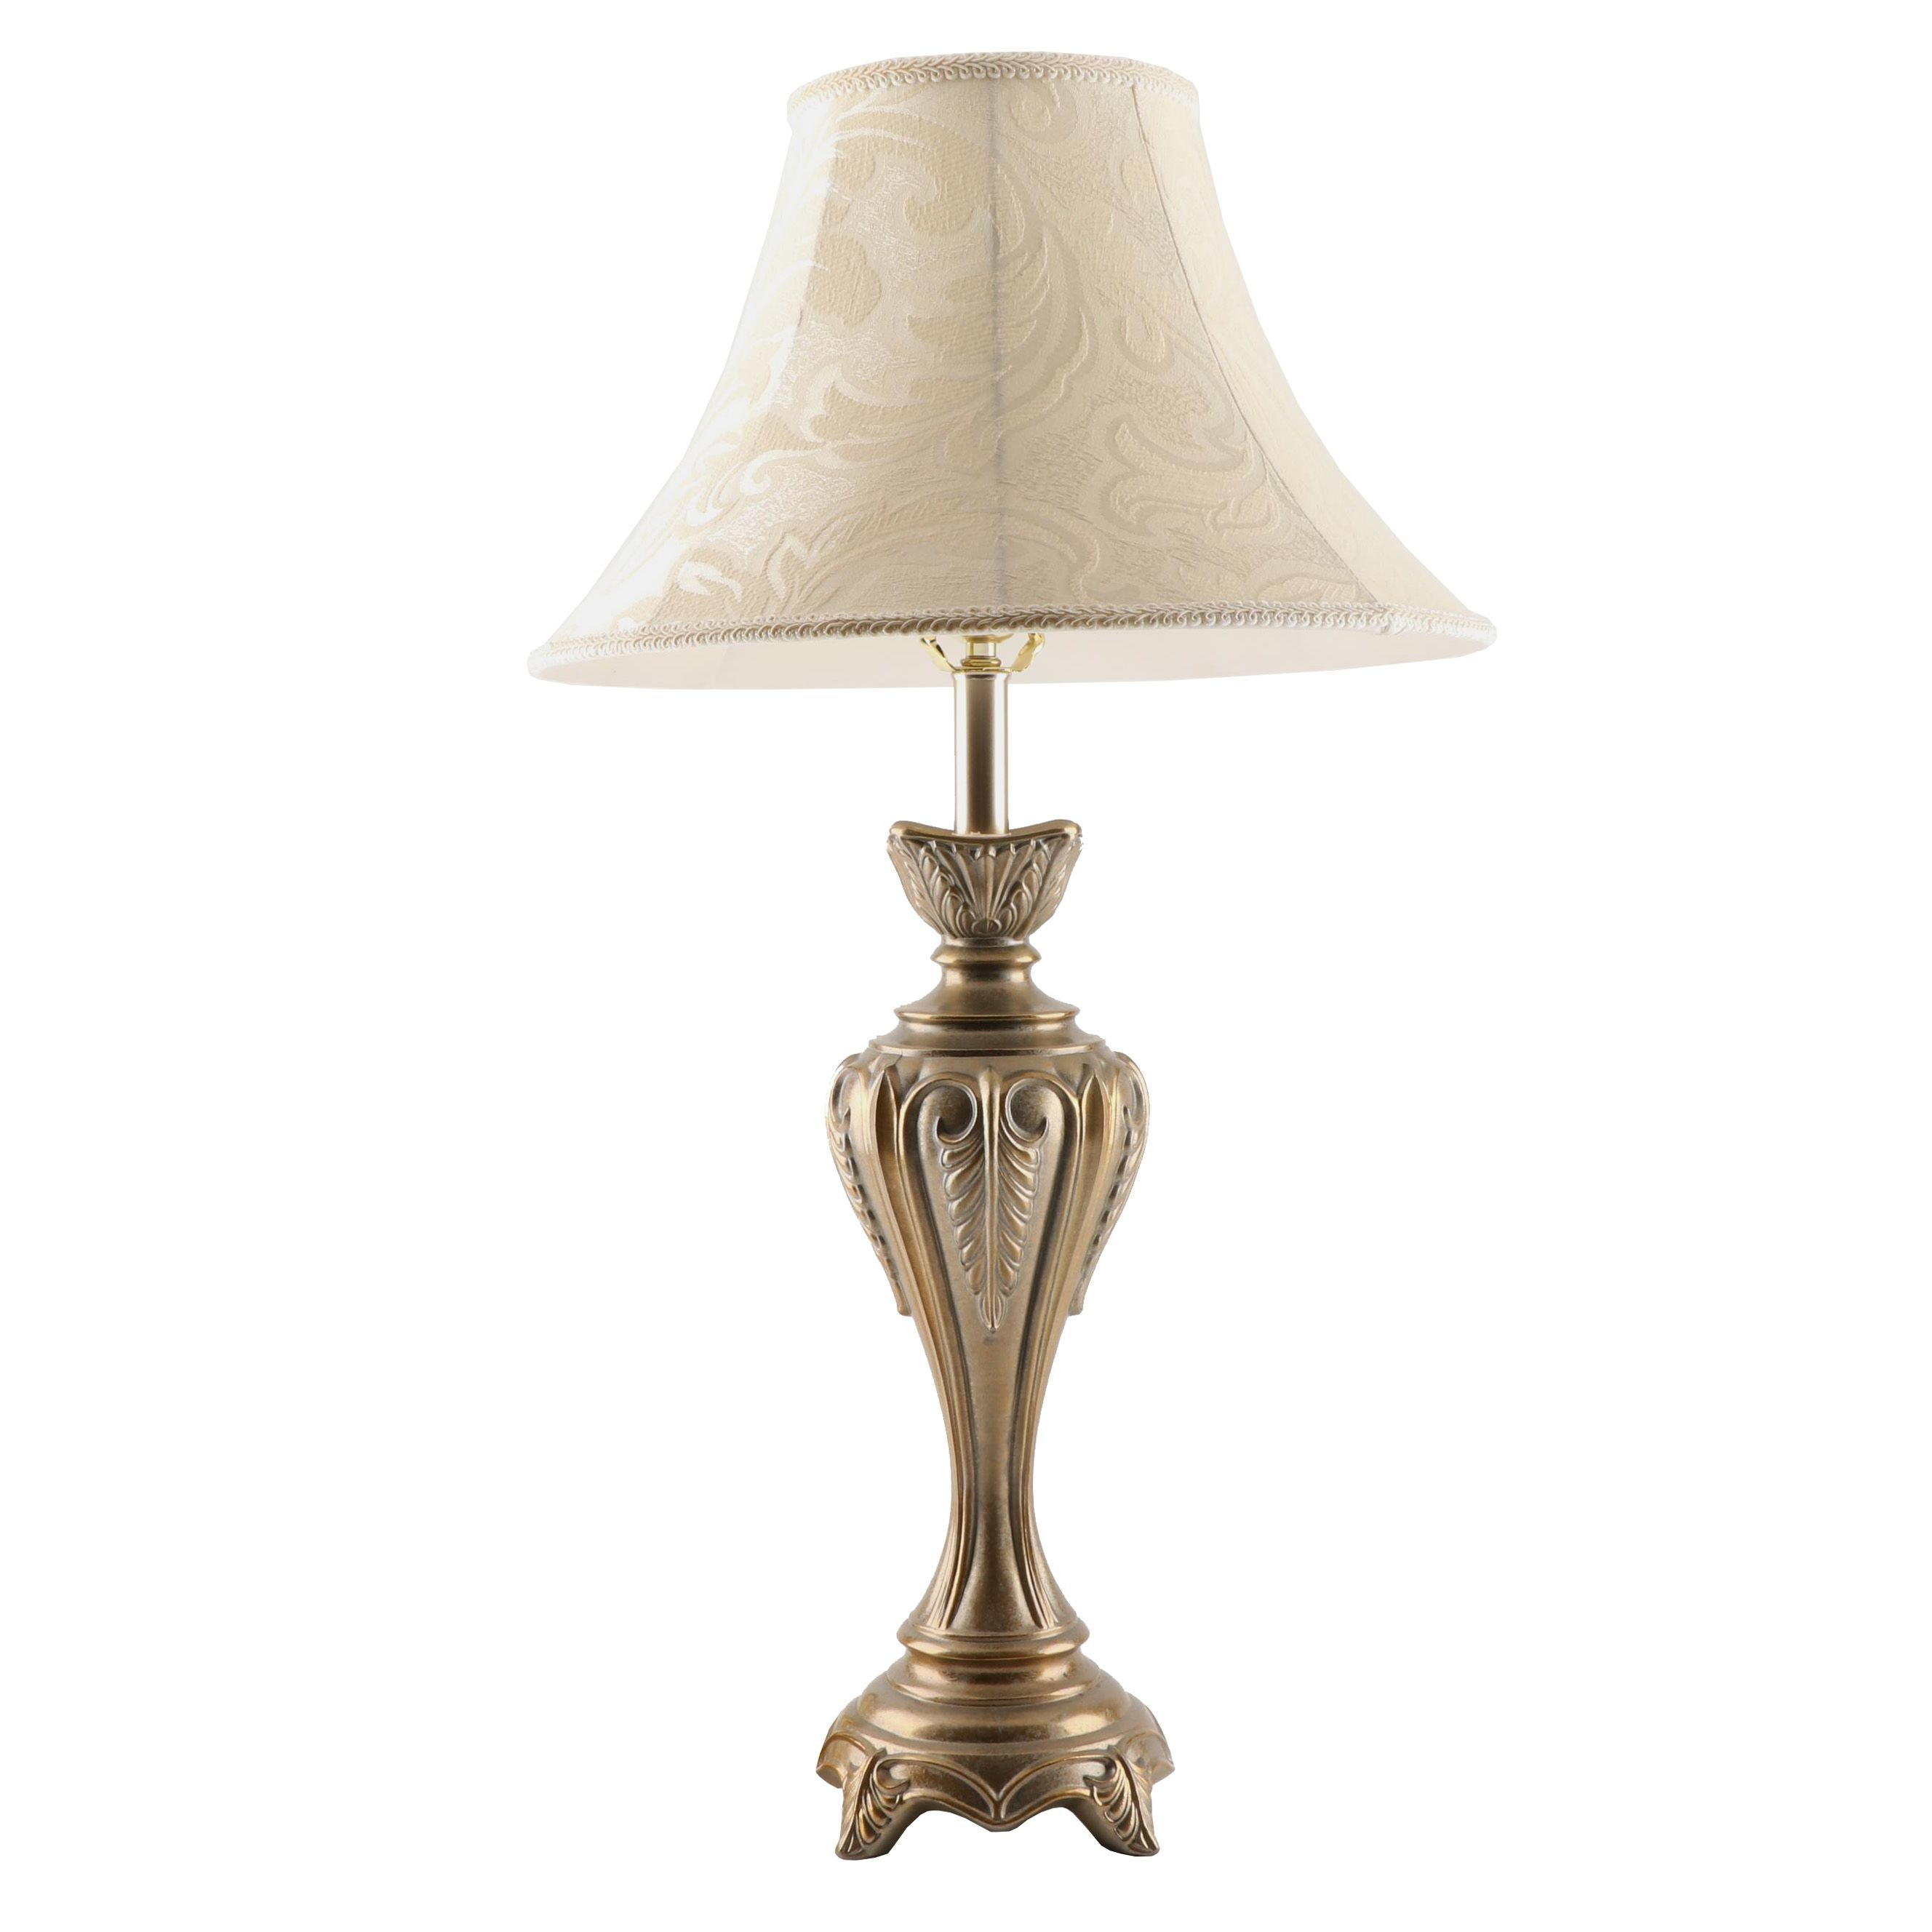 Brass Finish Metal Table Lamp with Damask Lamp Shade